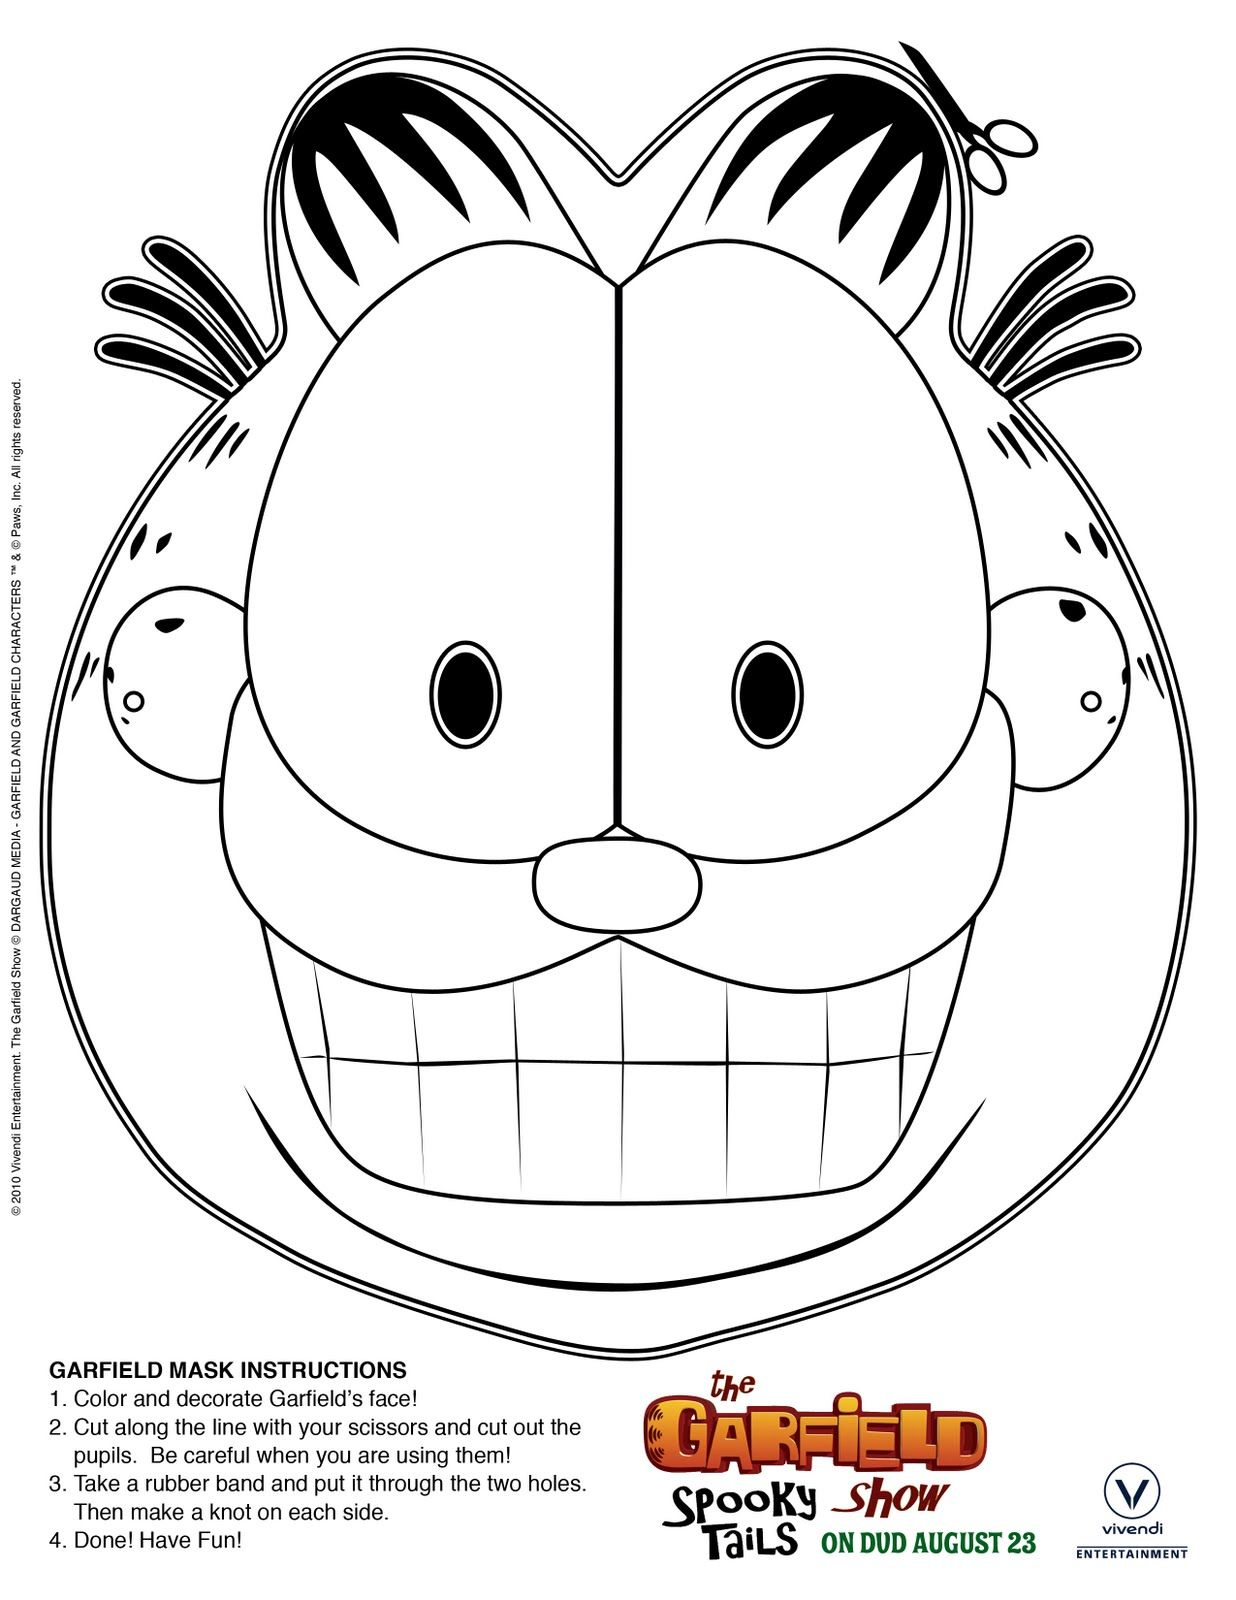 Coloring pages garfield - Free Printable Print Color Garfield Mask